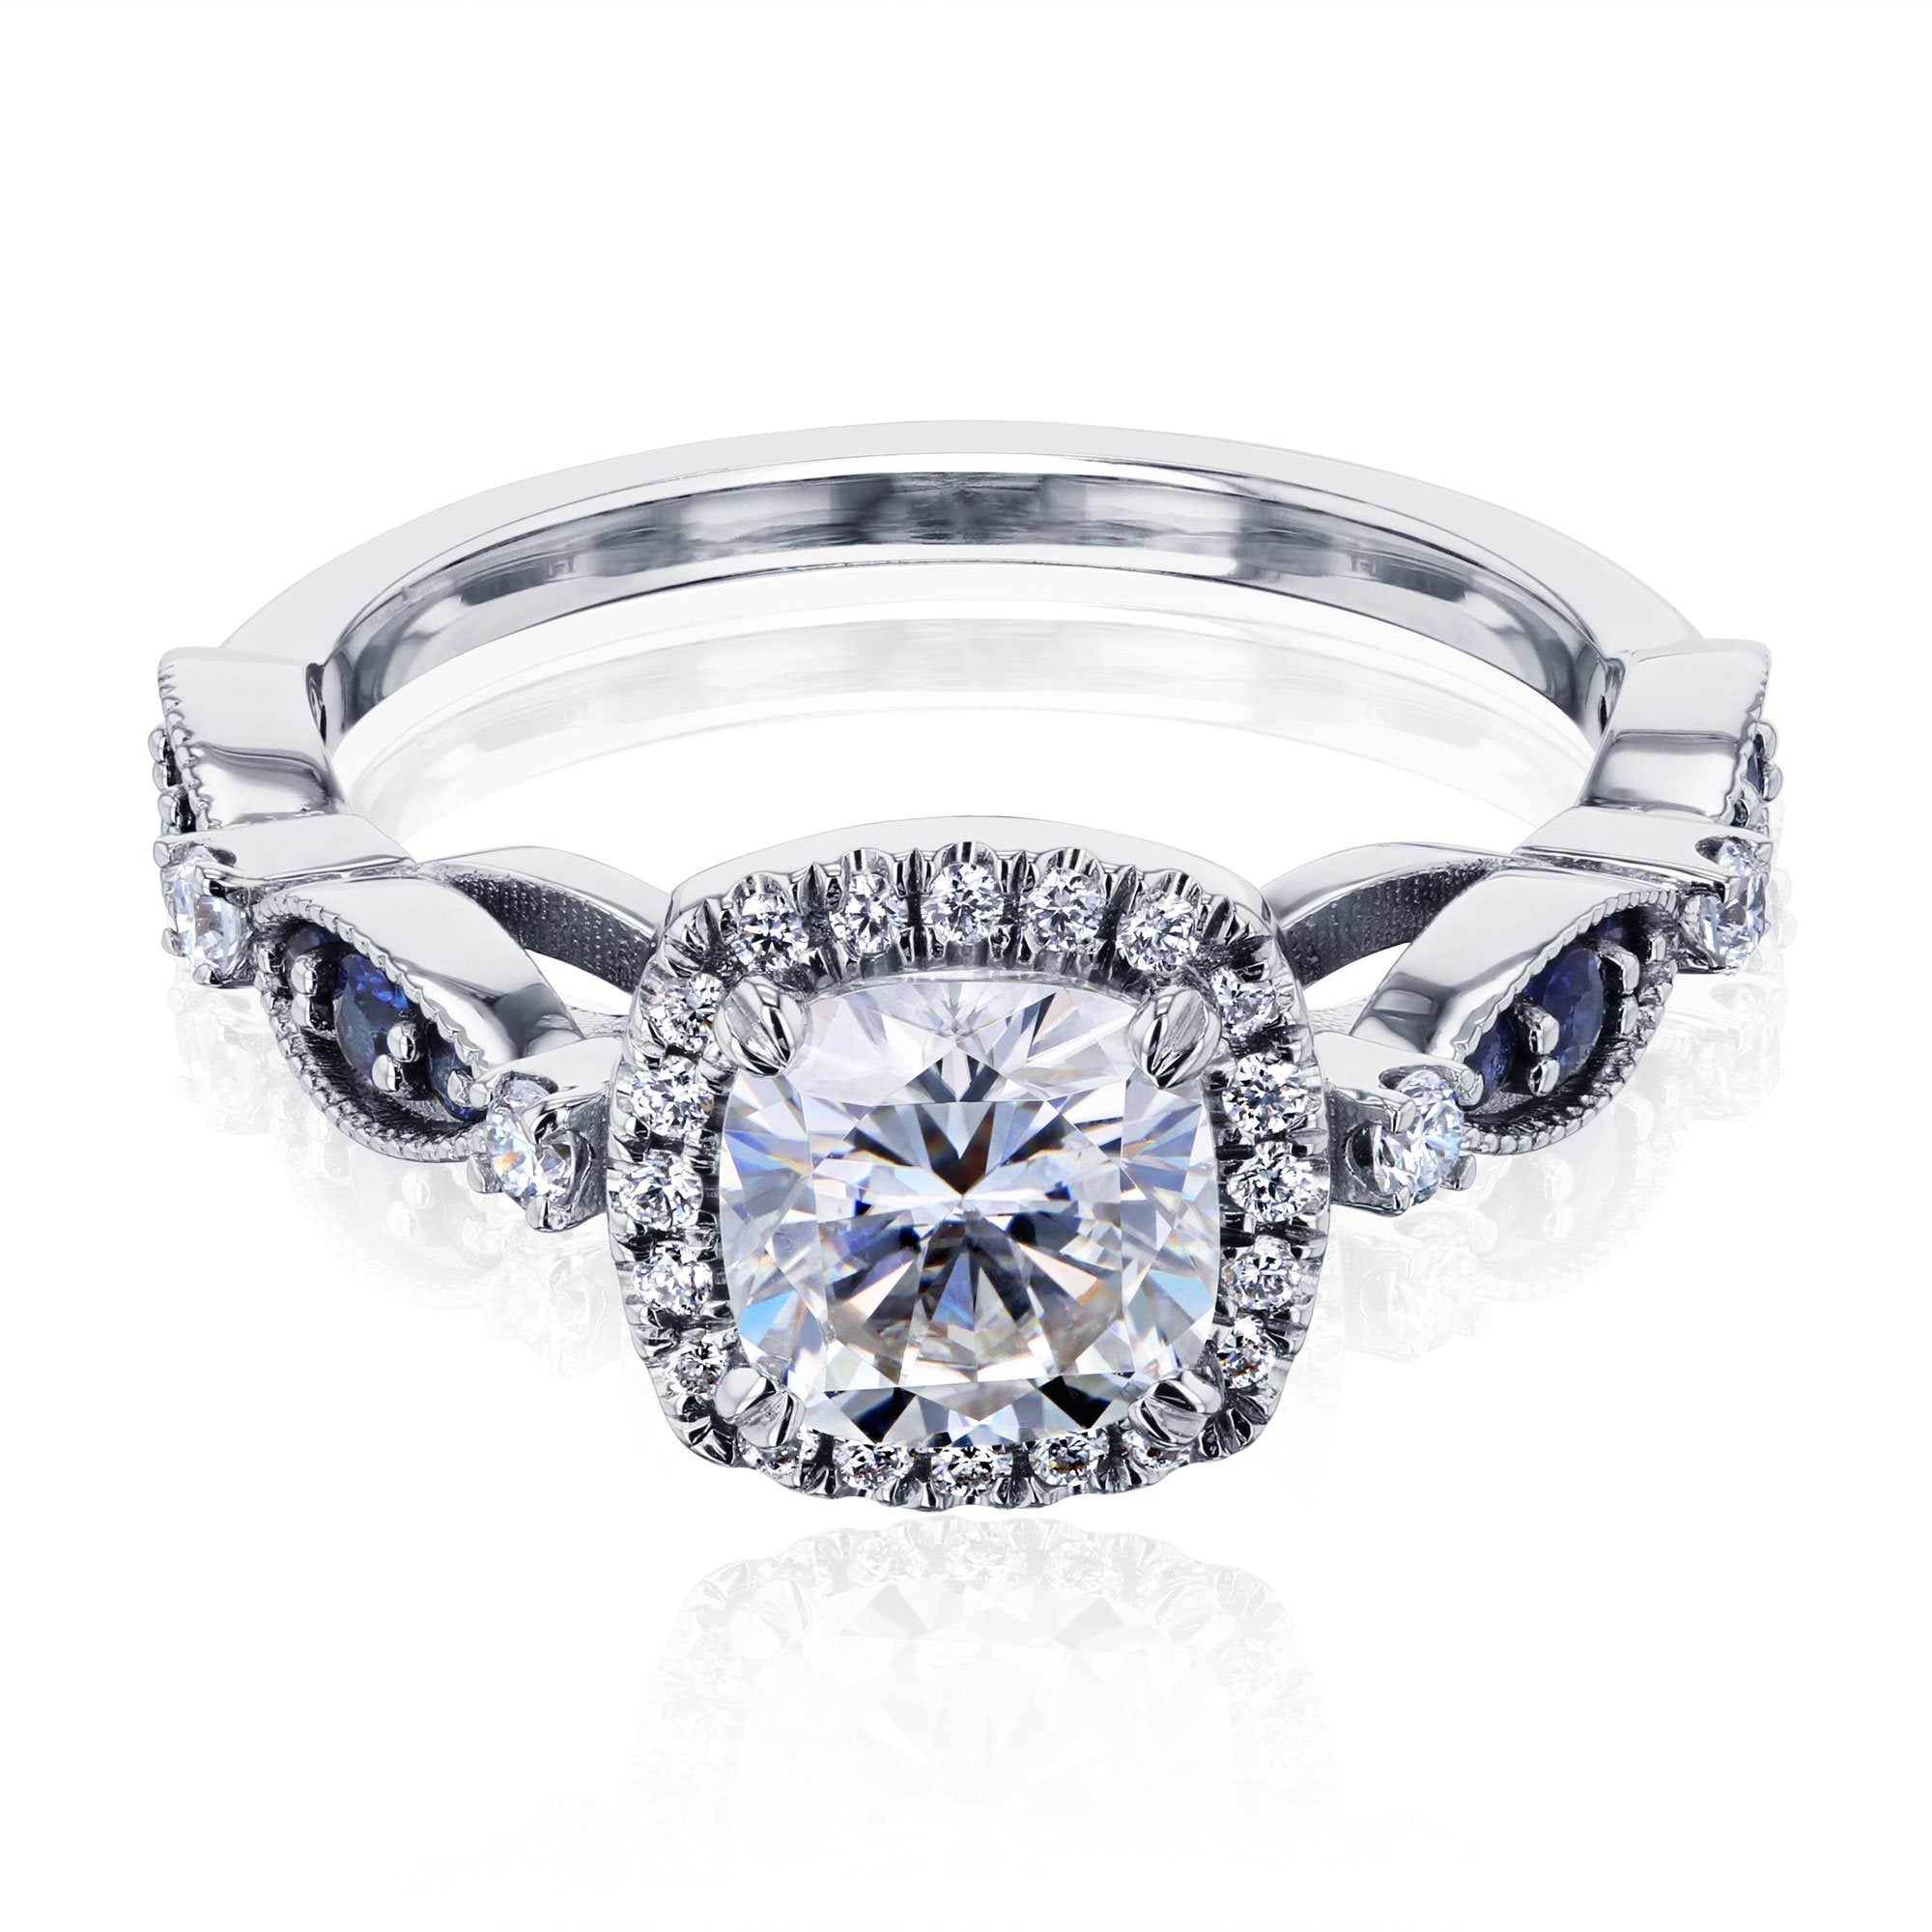 Compare Moissanite with Halo Eyelet Engagement Ring - white-gold 8.0 Forever One D-E-F